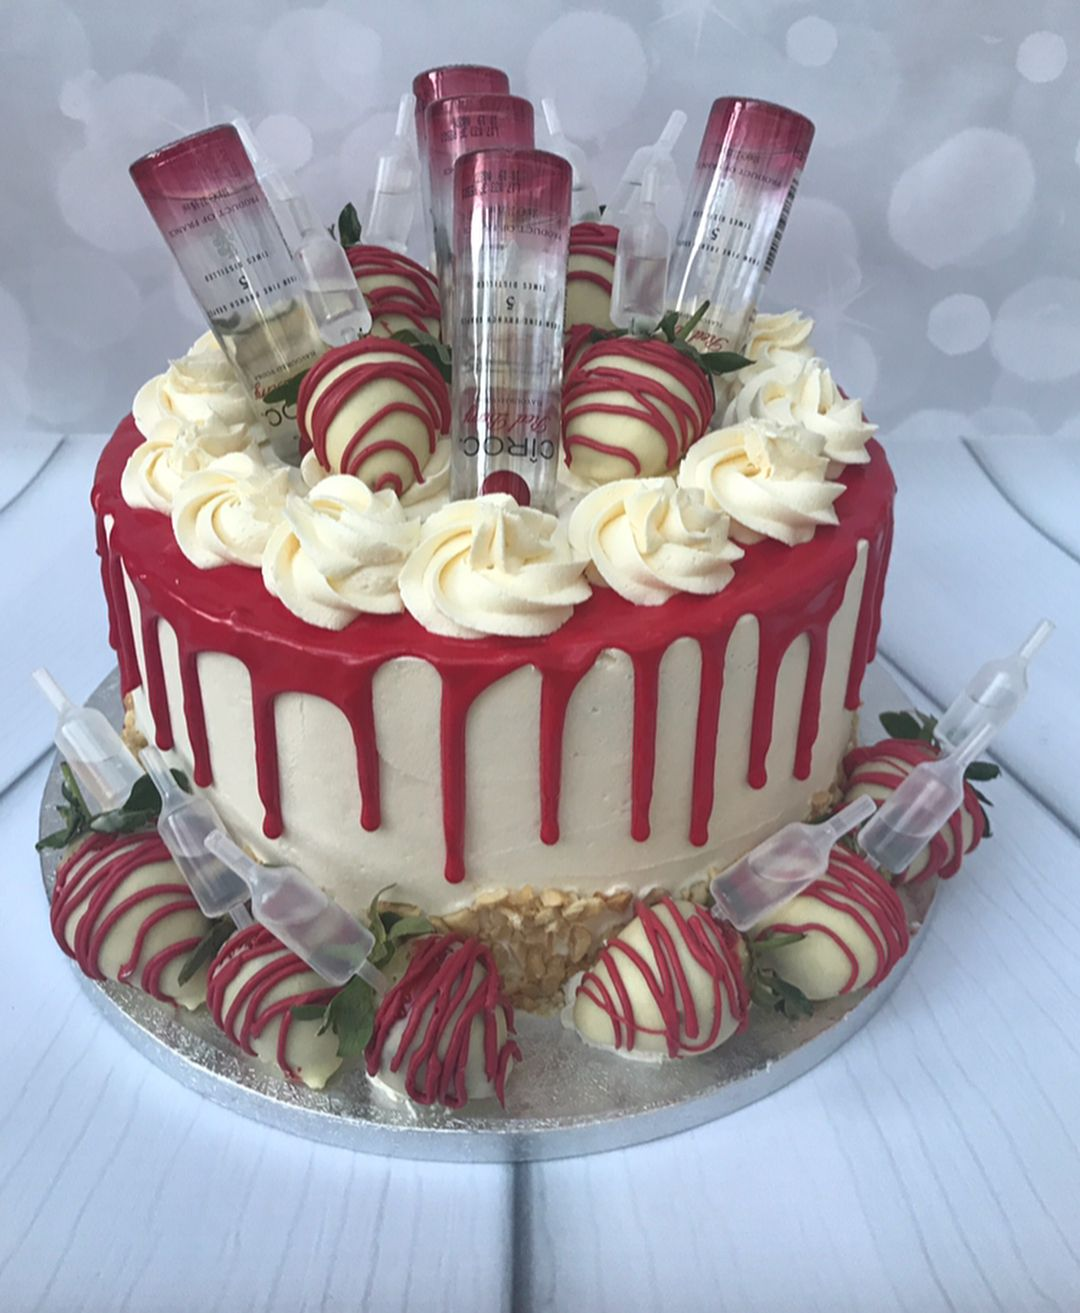 Amazing So What Do You Think Could This Possibly Be The Cake Every1 Personalised Birthday Cards Veneteletsinfo